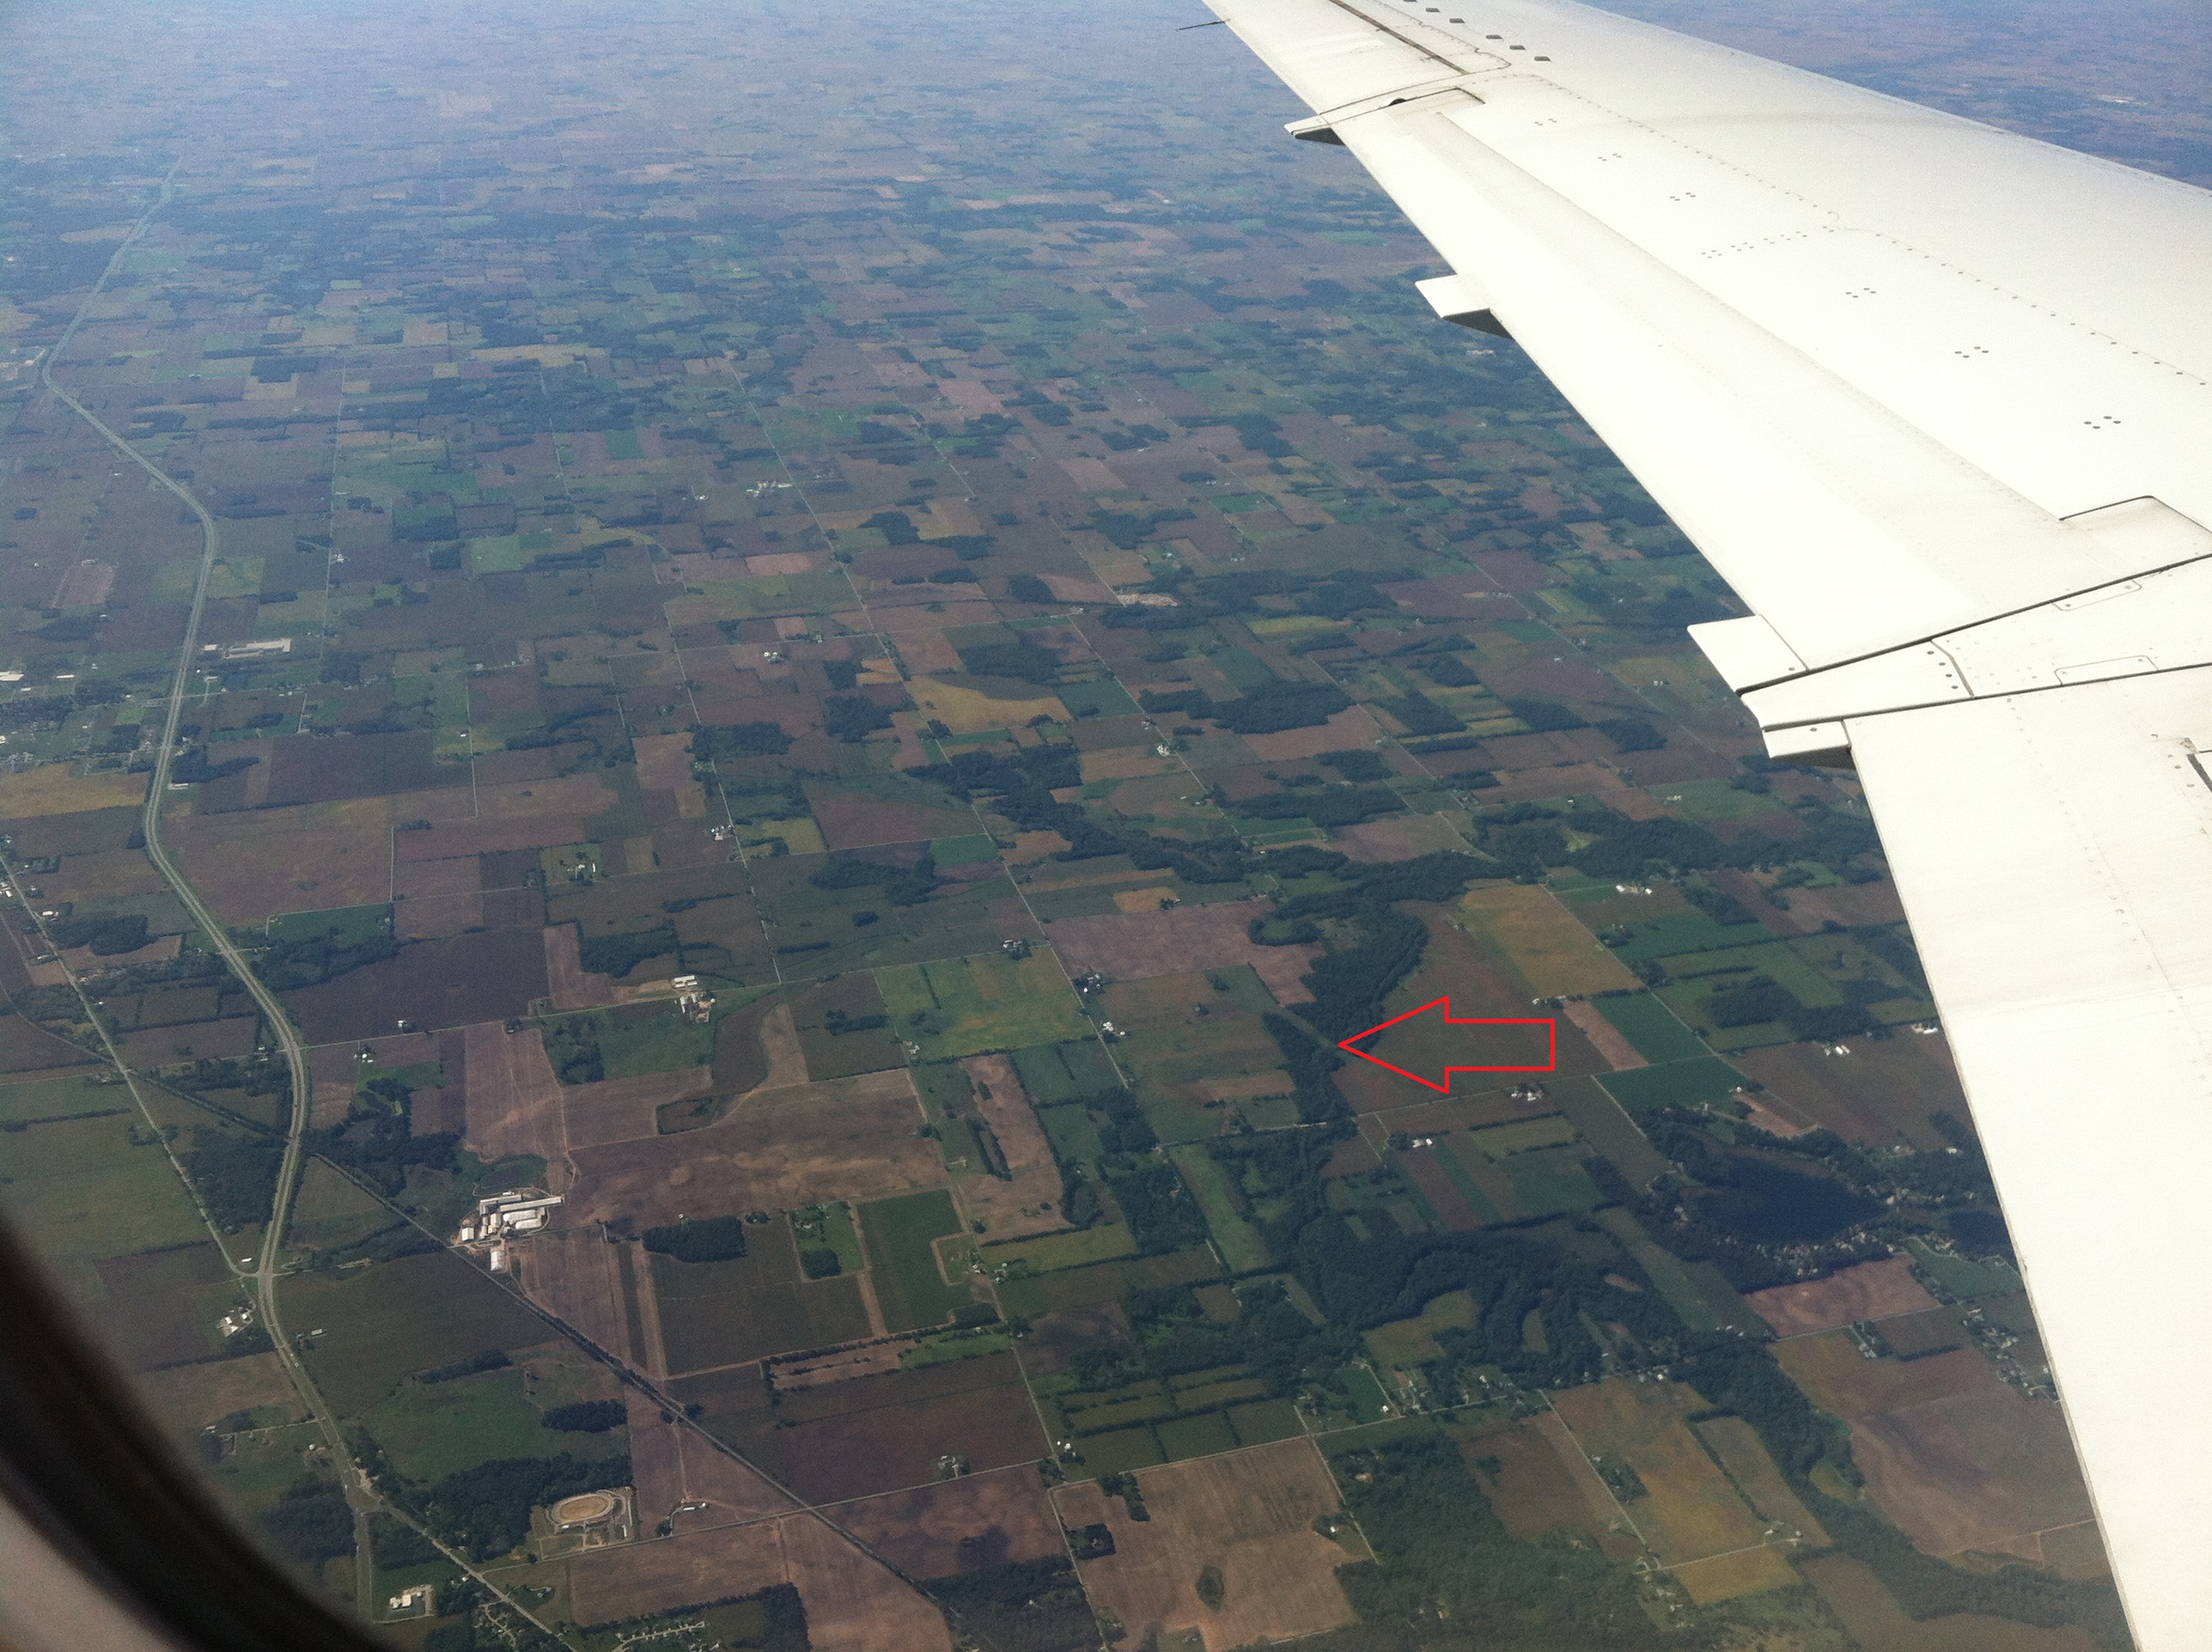 aerial photograph from plane window